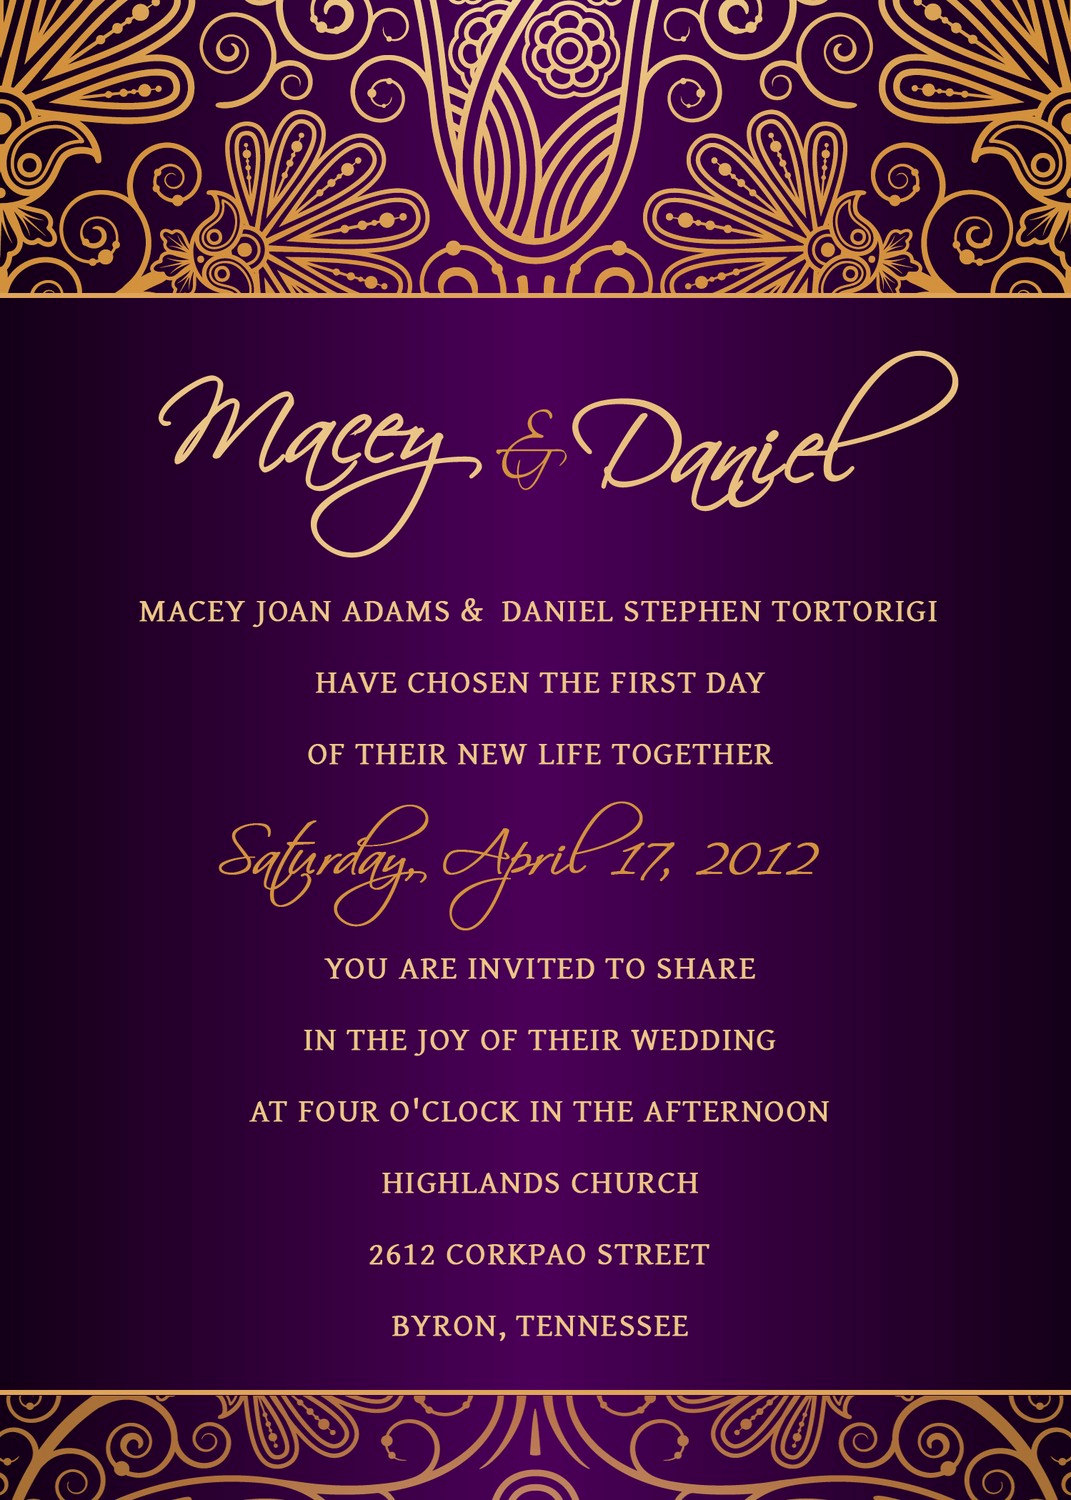 Wedding Invitation Design Templates Awesome Invitation Templates Shop Invitation Template